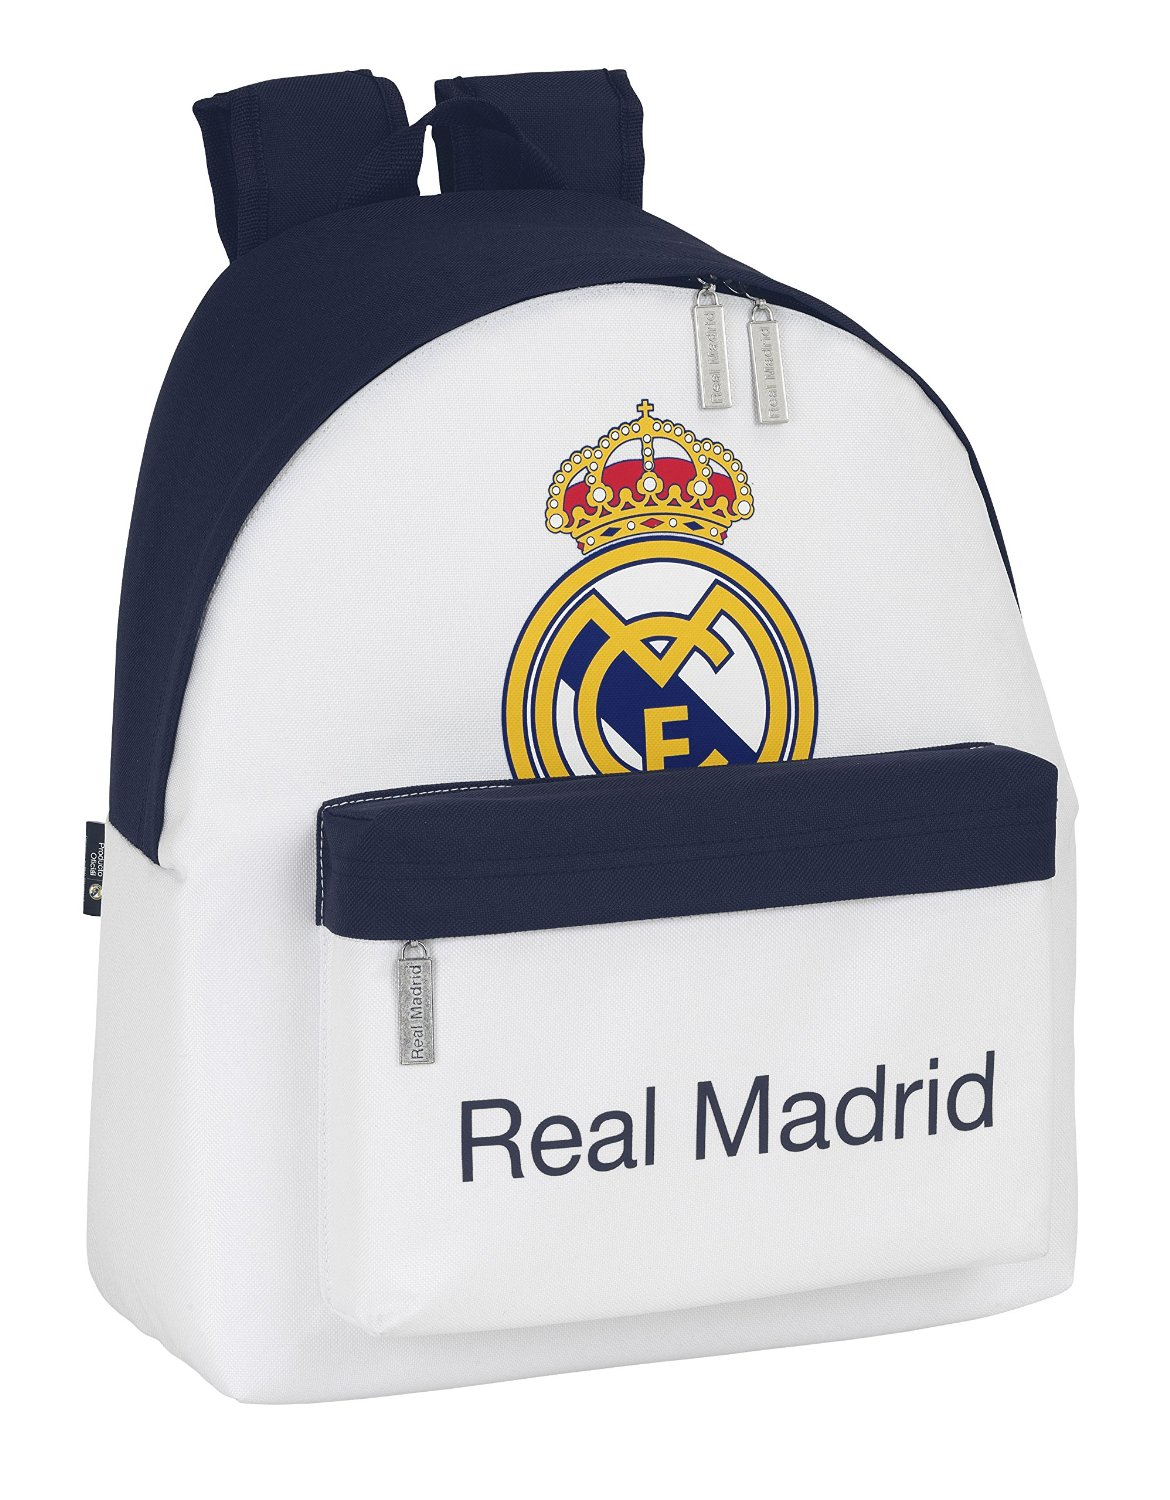 Real Madrid - Mochila, color blanco